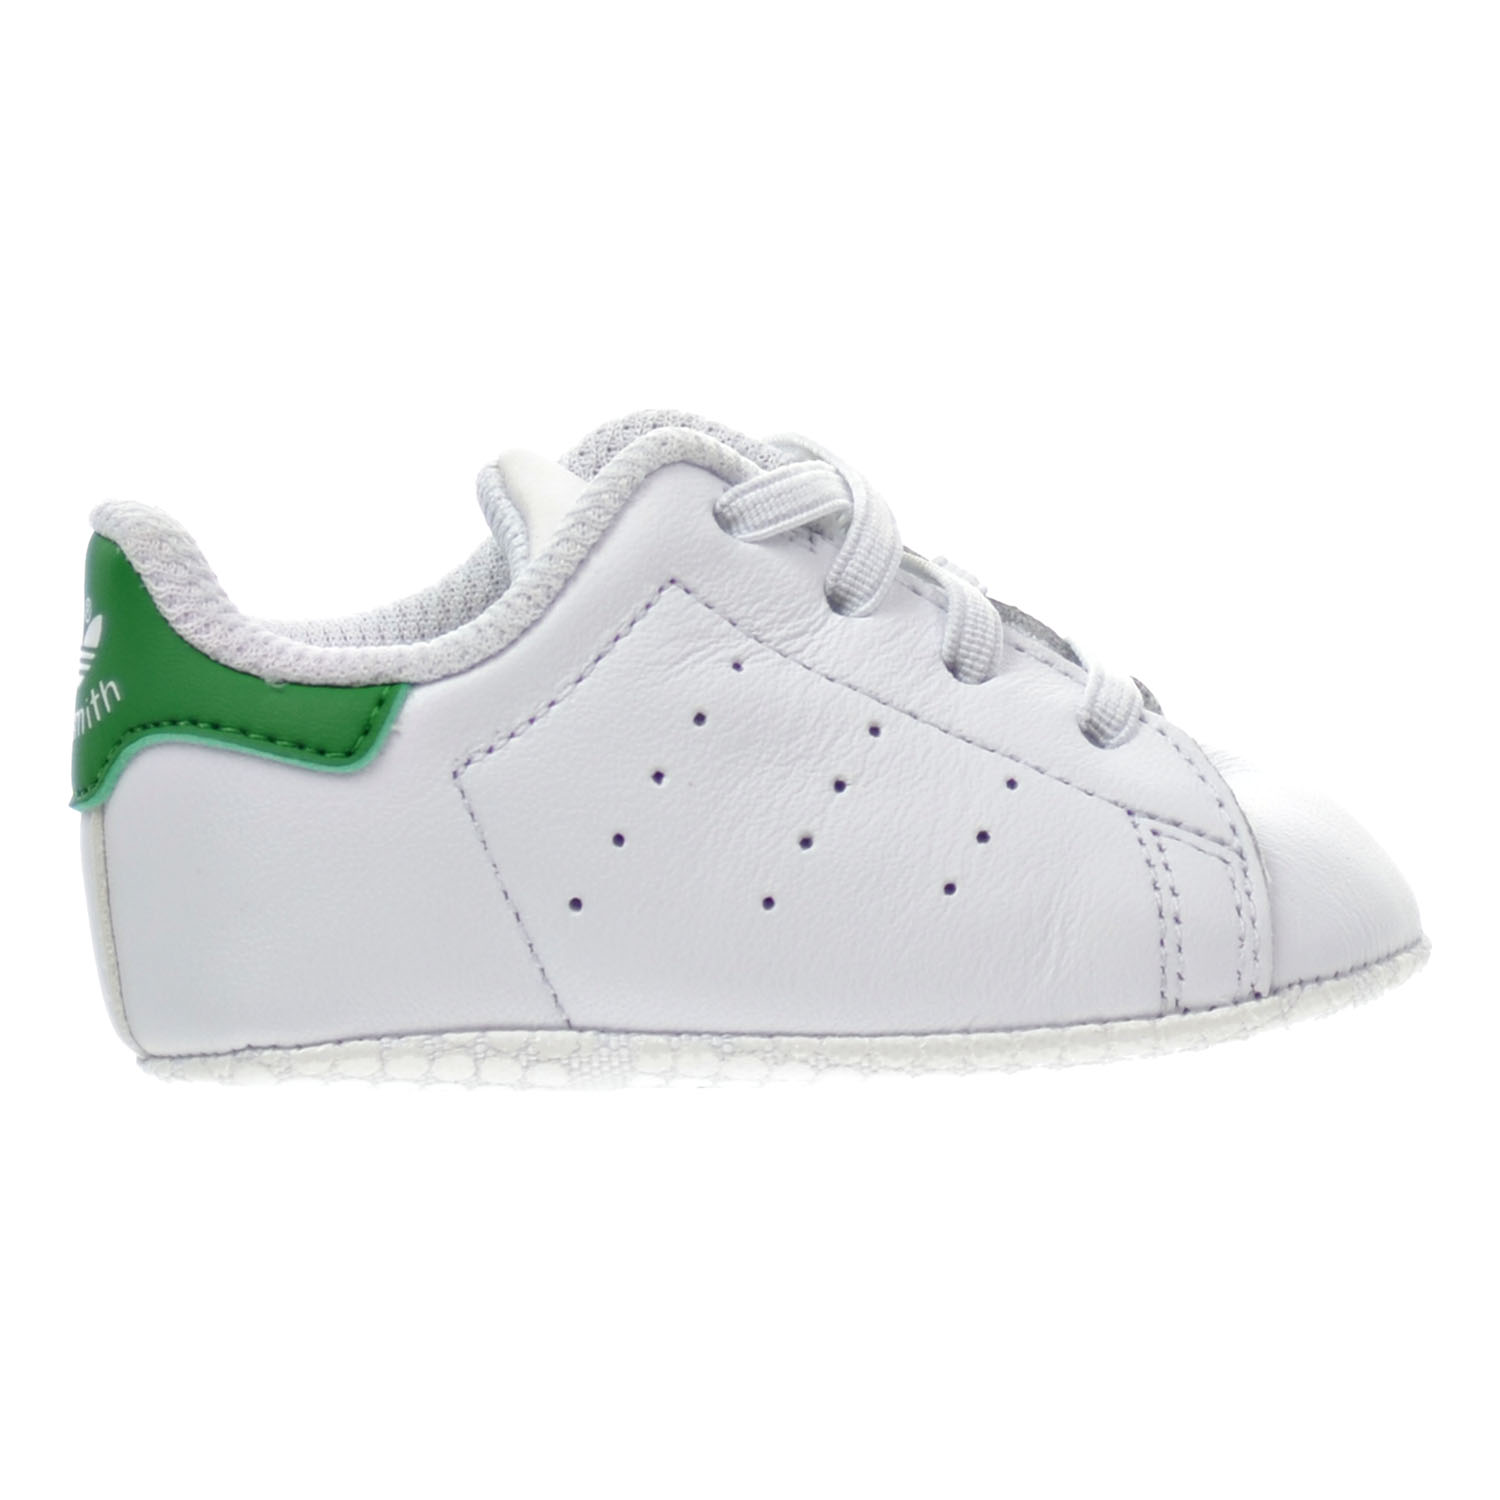 info for 90d23 3a858 Details about Adidas Stan Smith Crib s Shoes White Green b24101